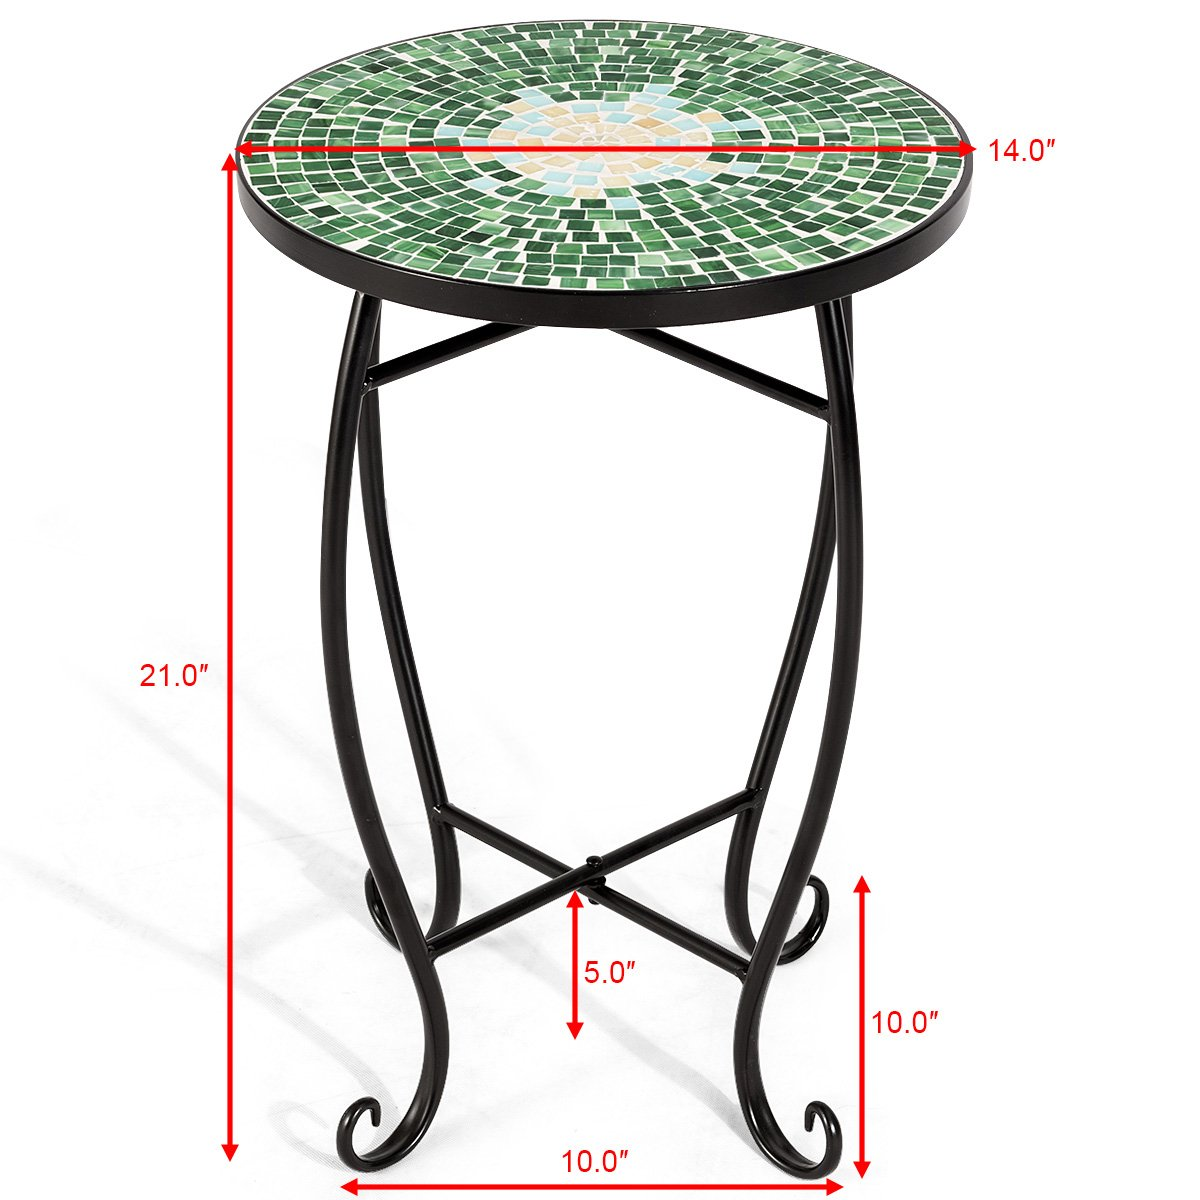 giantex mosaic round side accent table patio plant stand porch beach outdoor theme balcony back deck pool square top furniture retro designer vintage replica kirklands bar stools